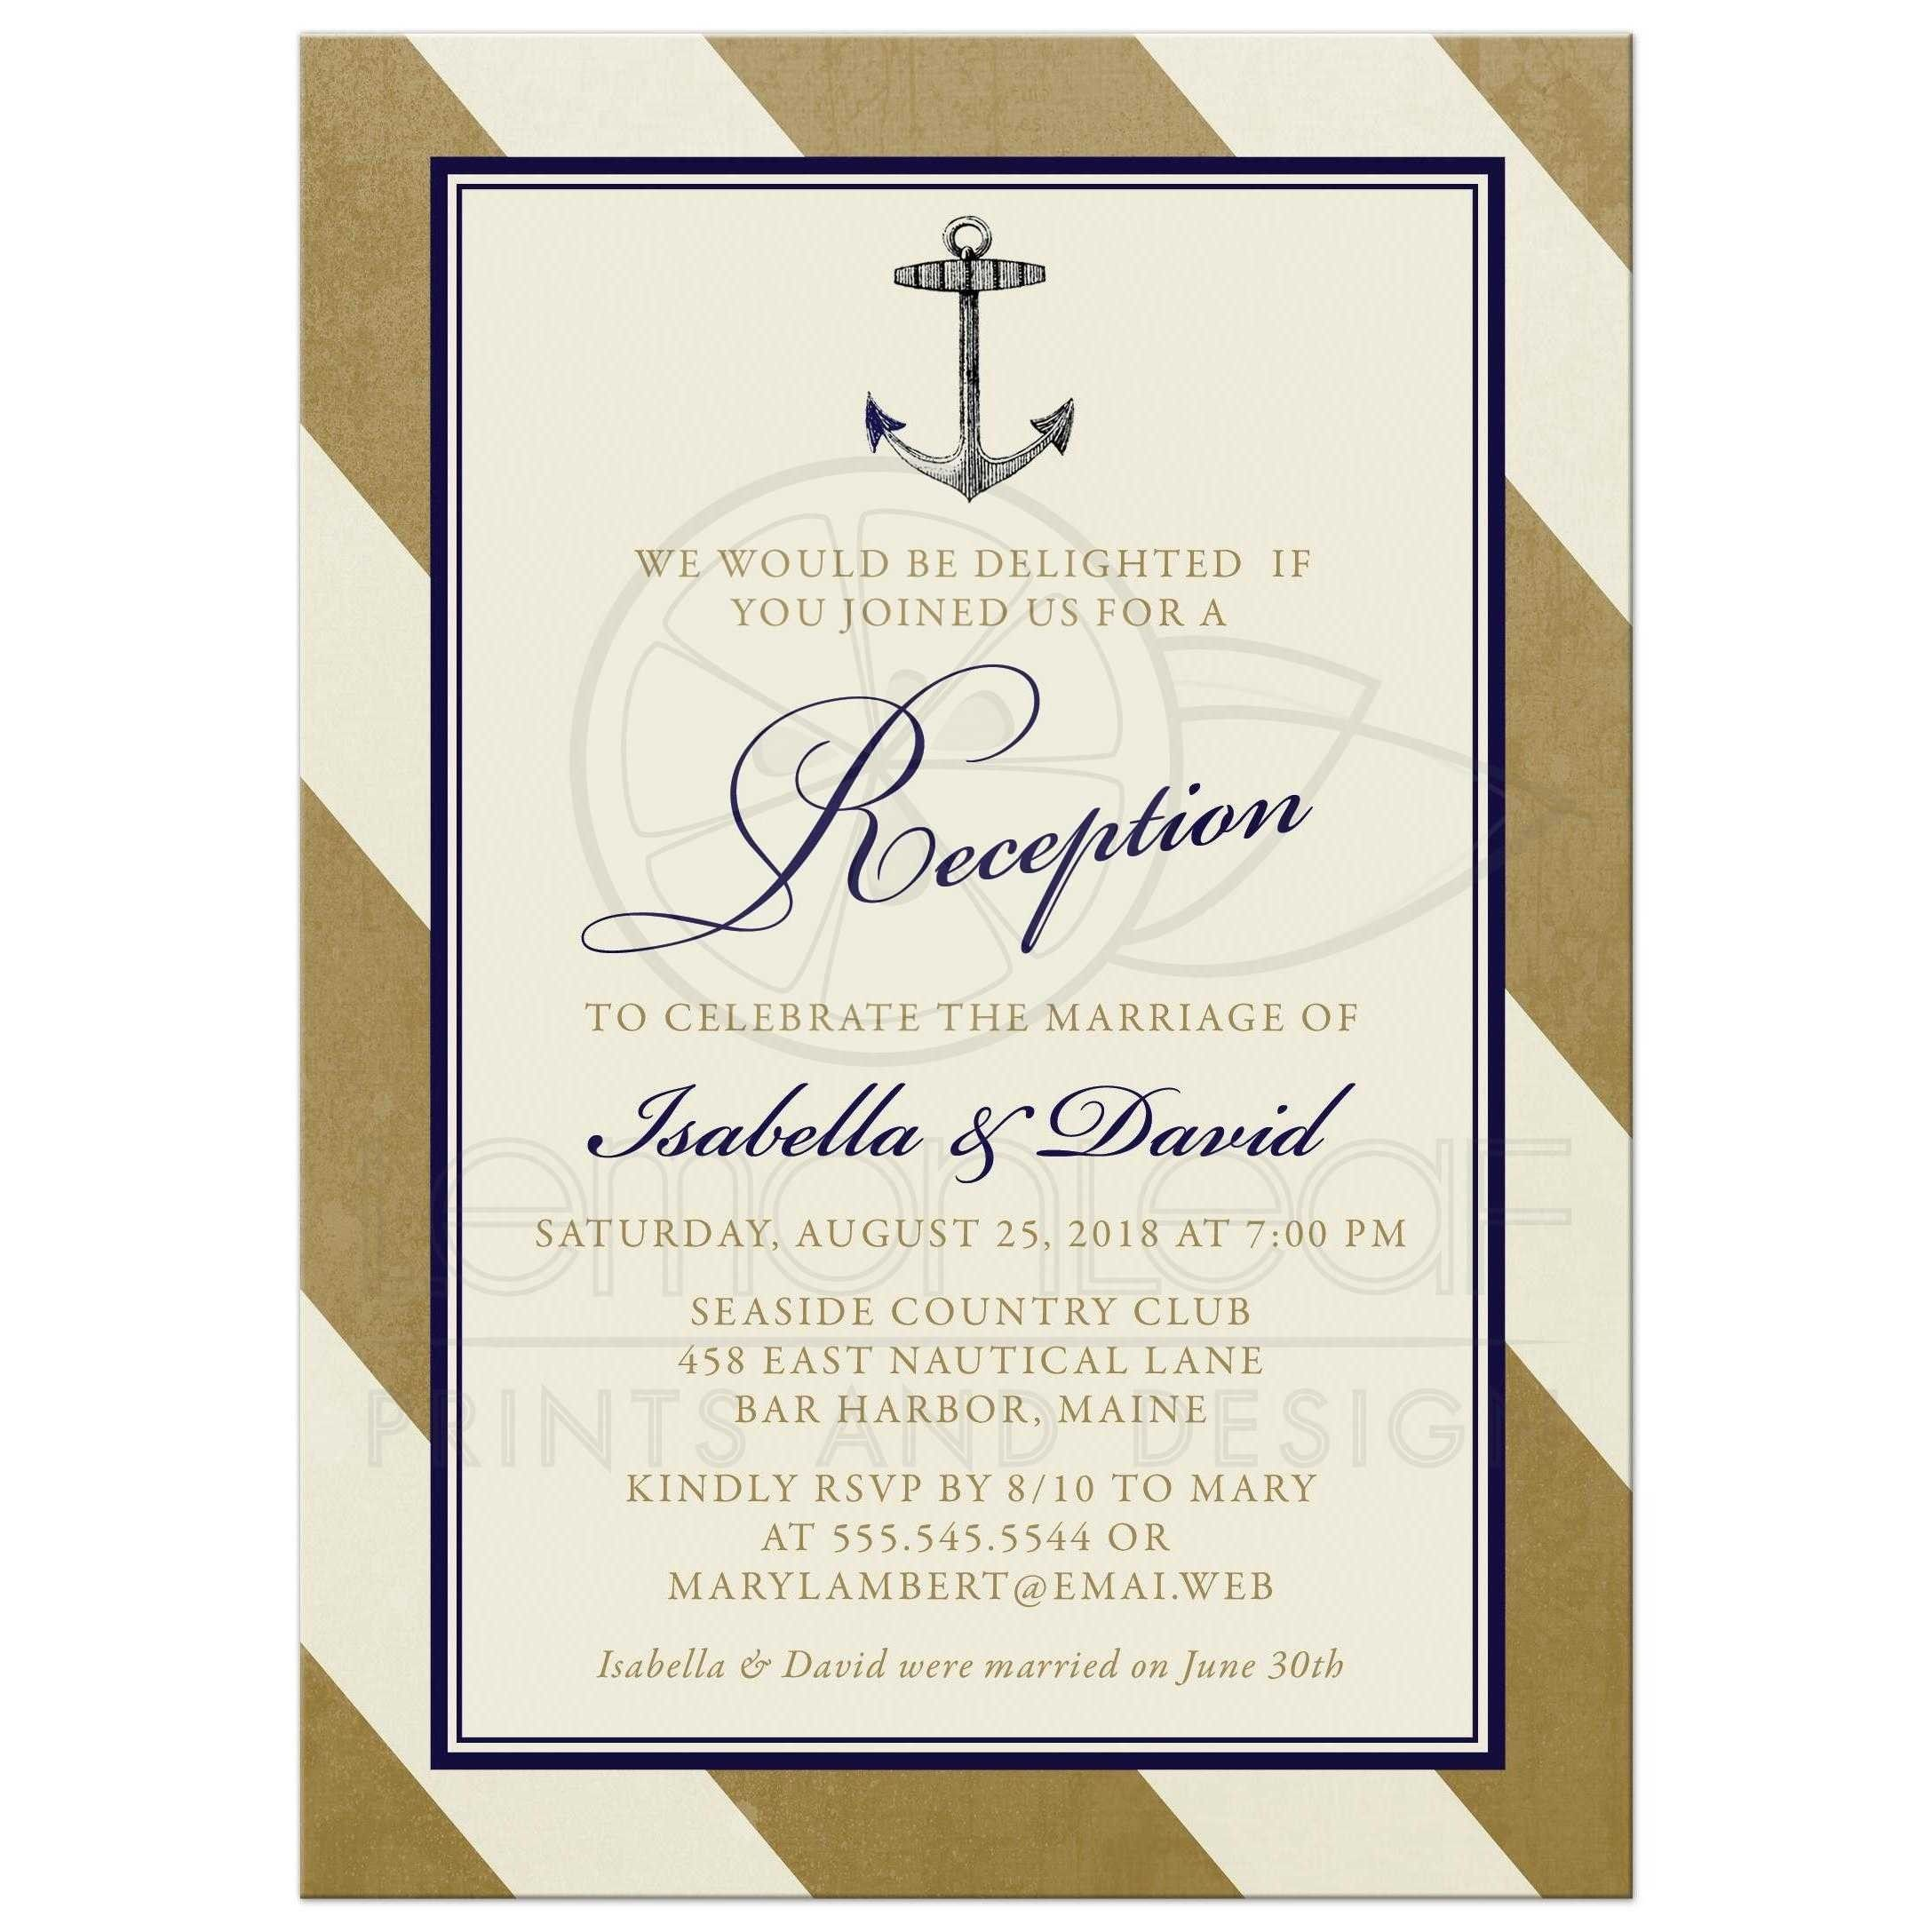 Casual Post Wedding Reception Invitation Camden Hopes Party